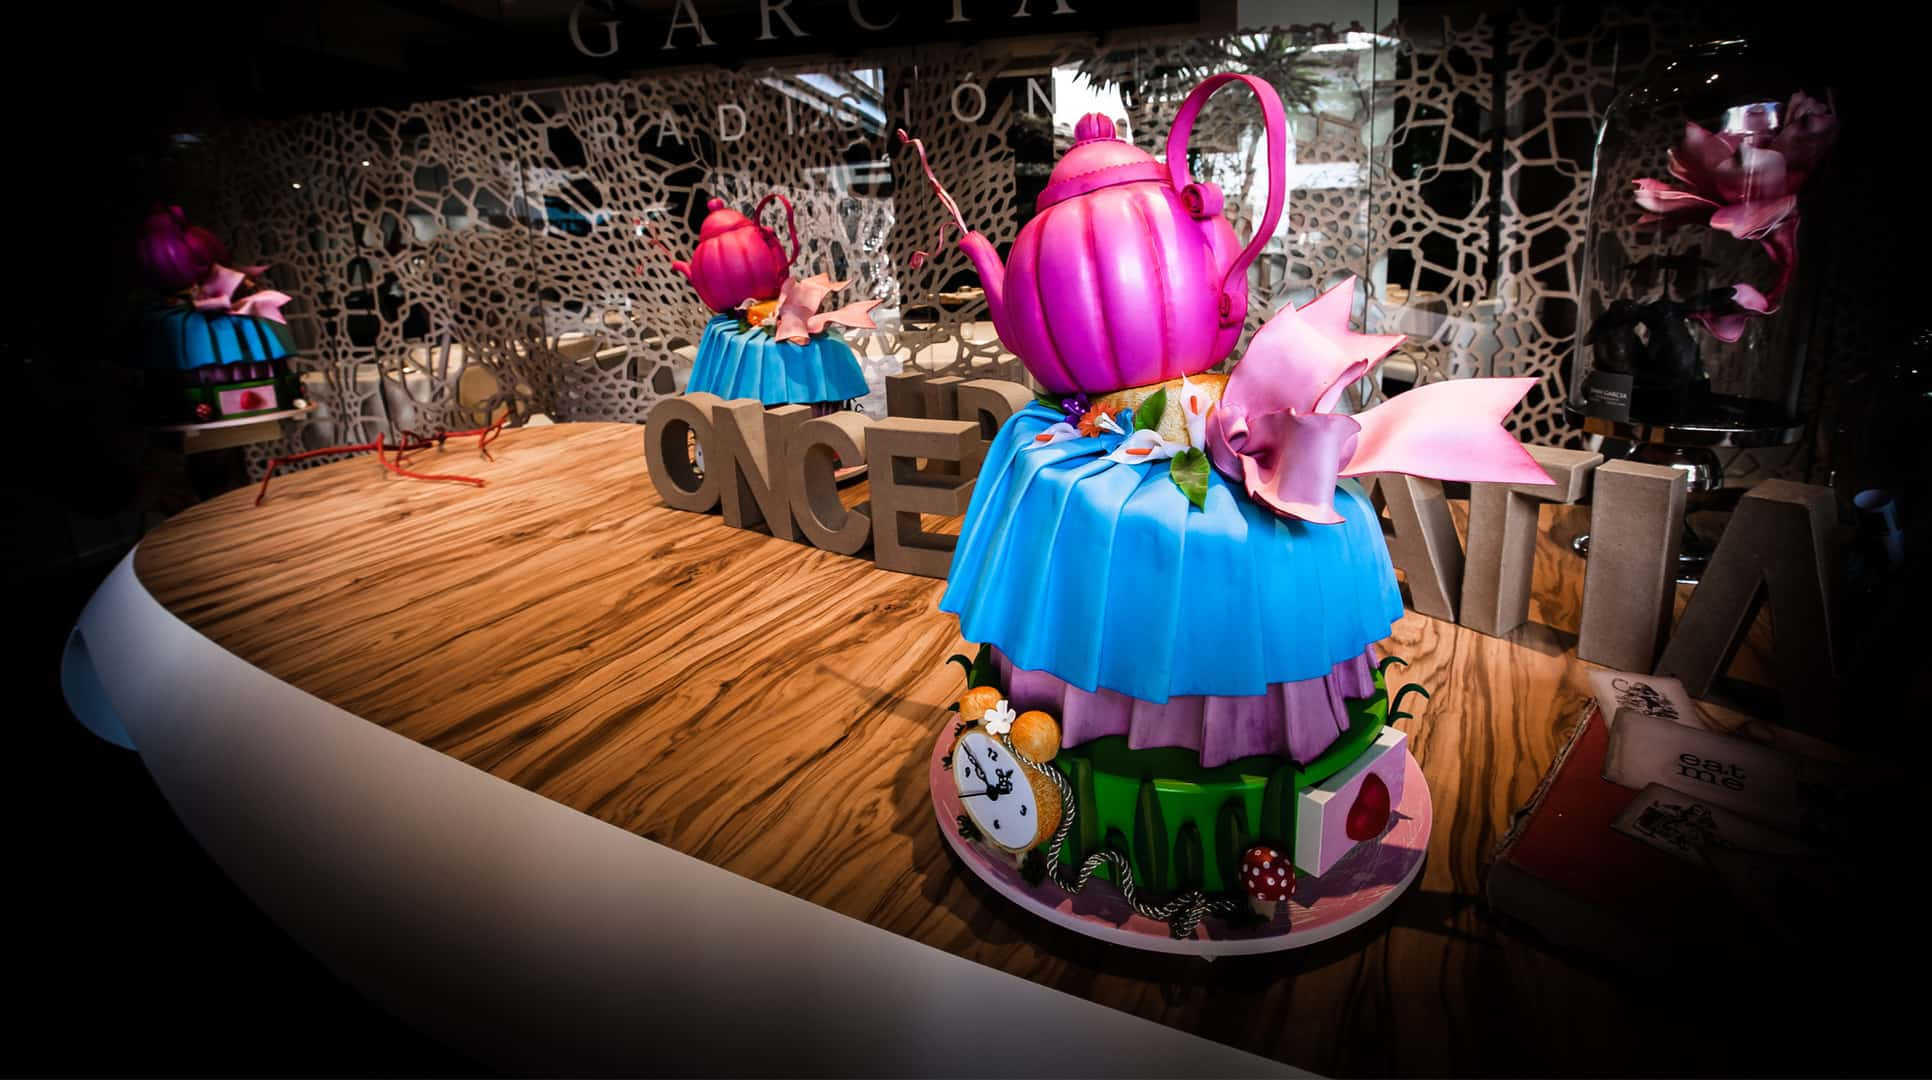 Teapots Dispensed After Dinner Treats At The Alice In Wonderland Inspired Restaurant of Dani Garcia